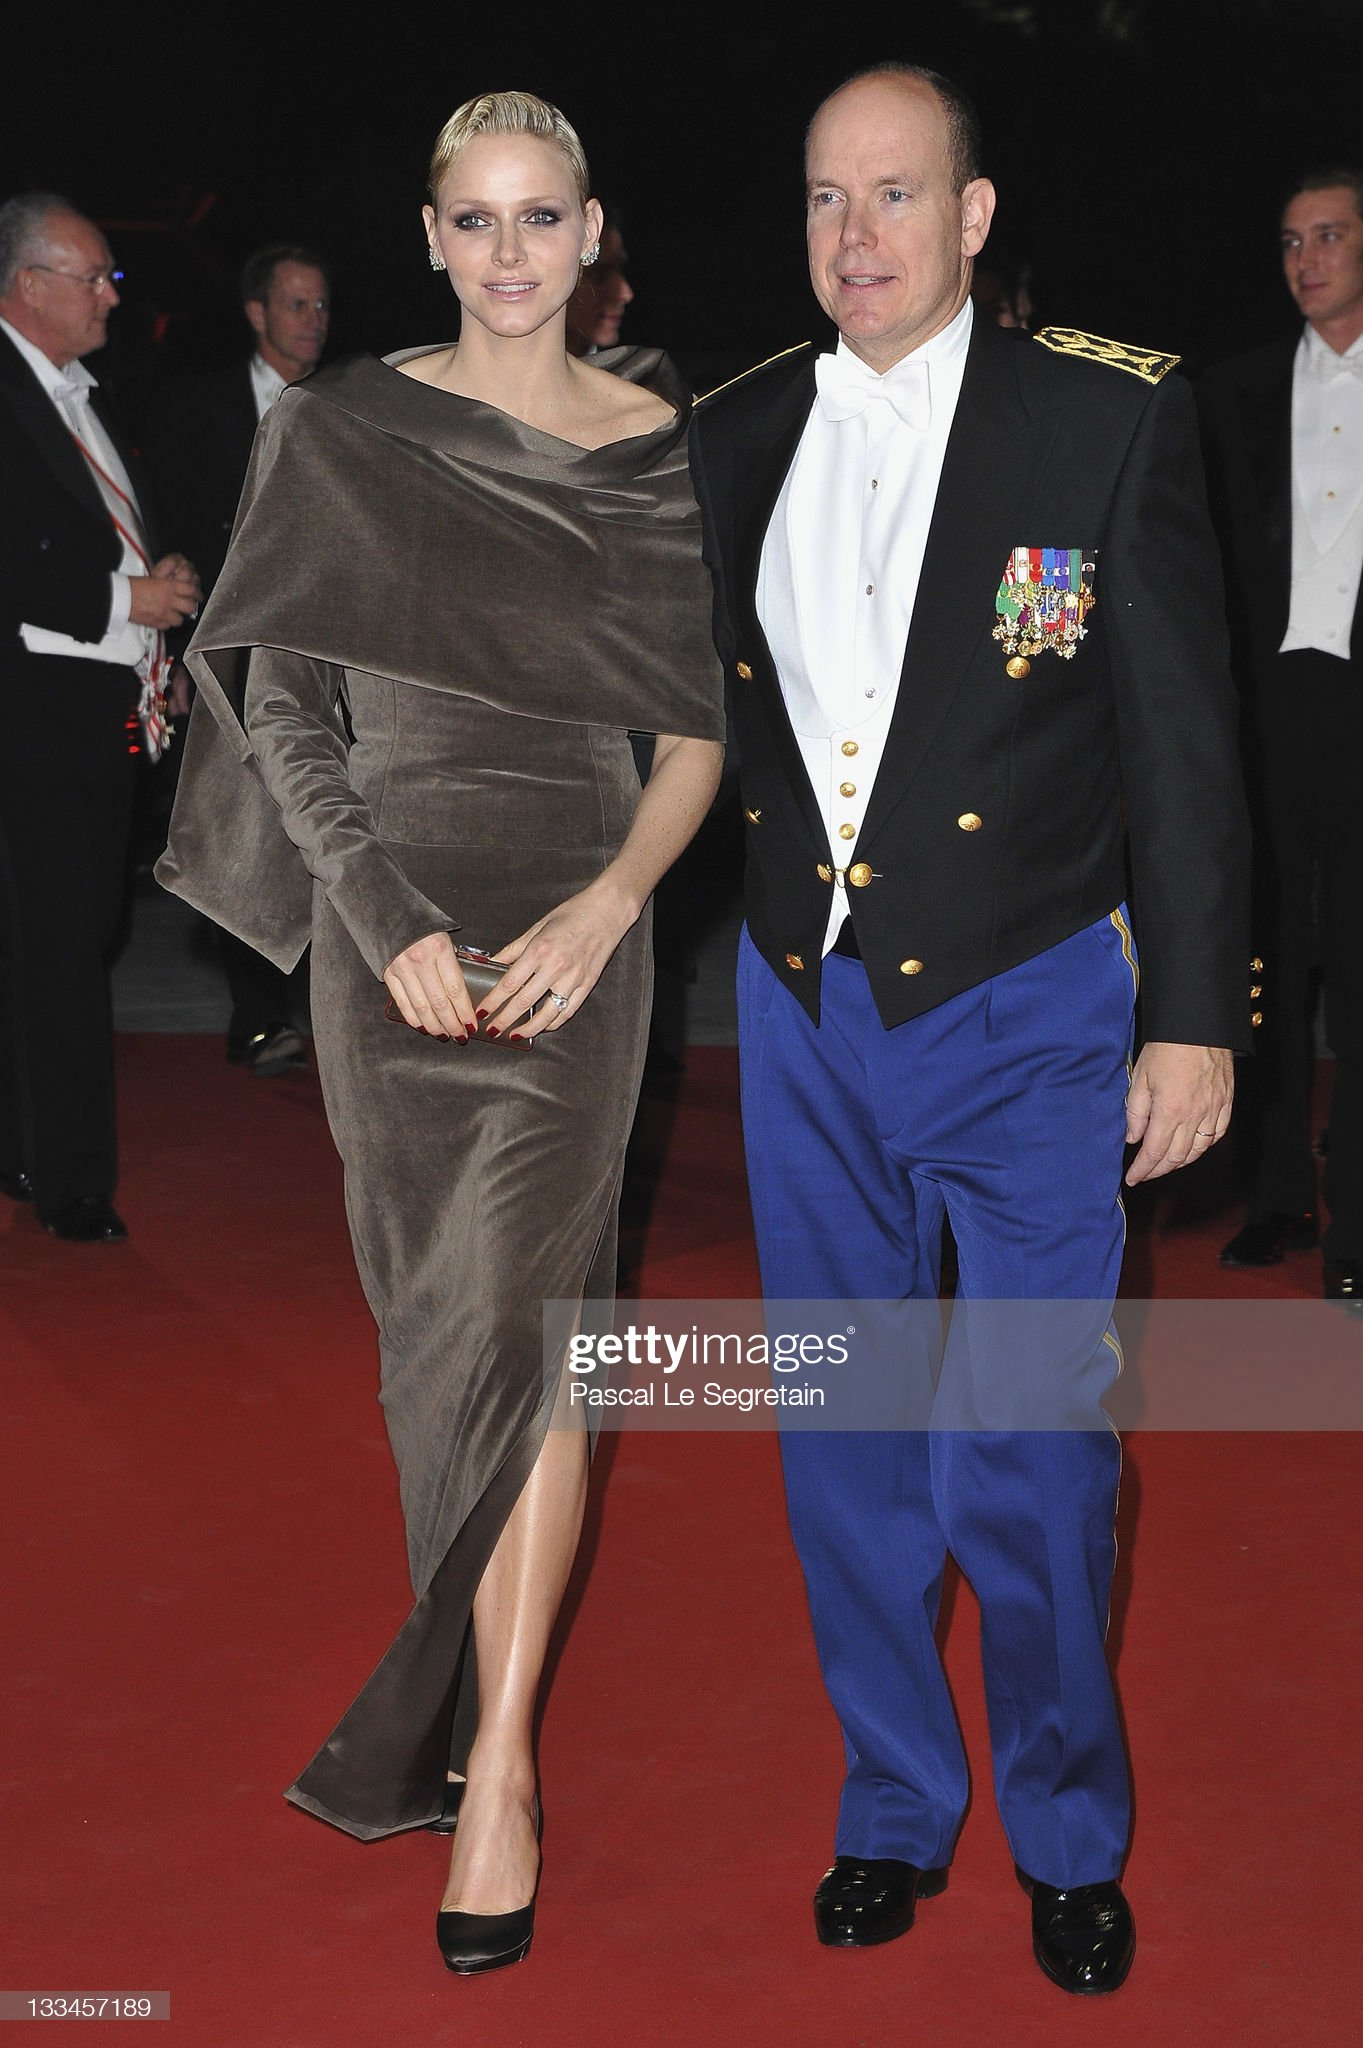 Monaco National Day 2011 - Gala Evening : News Photo